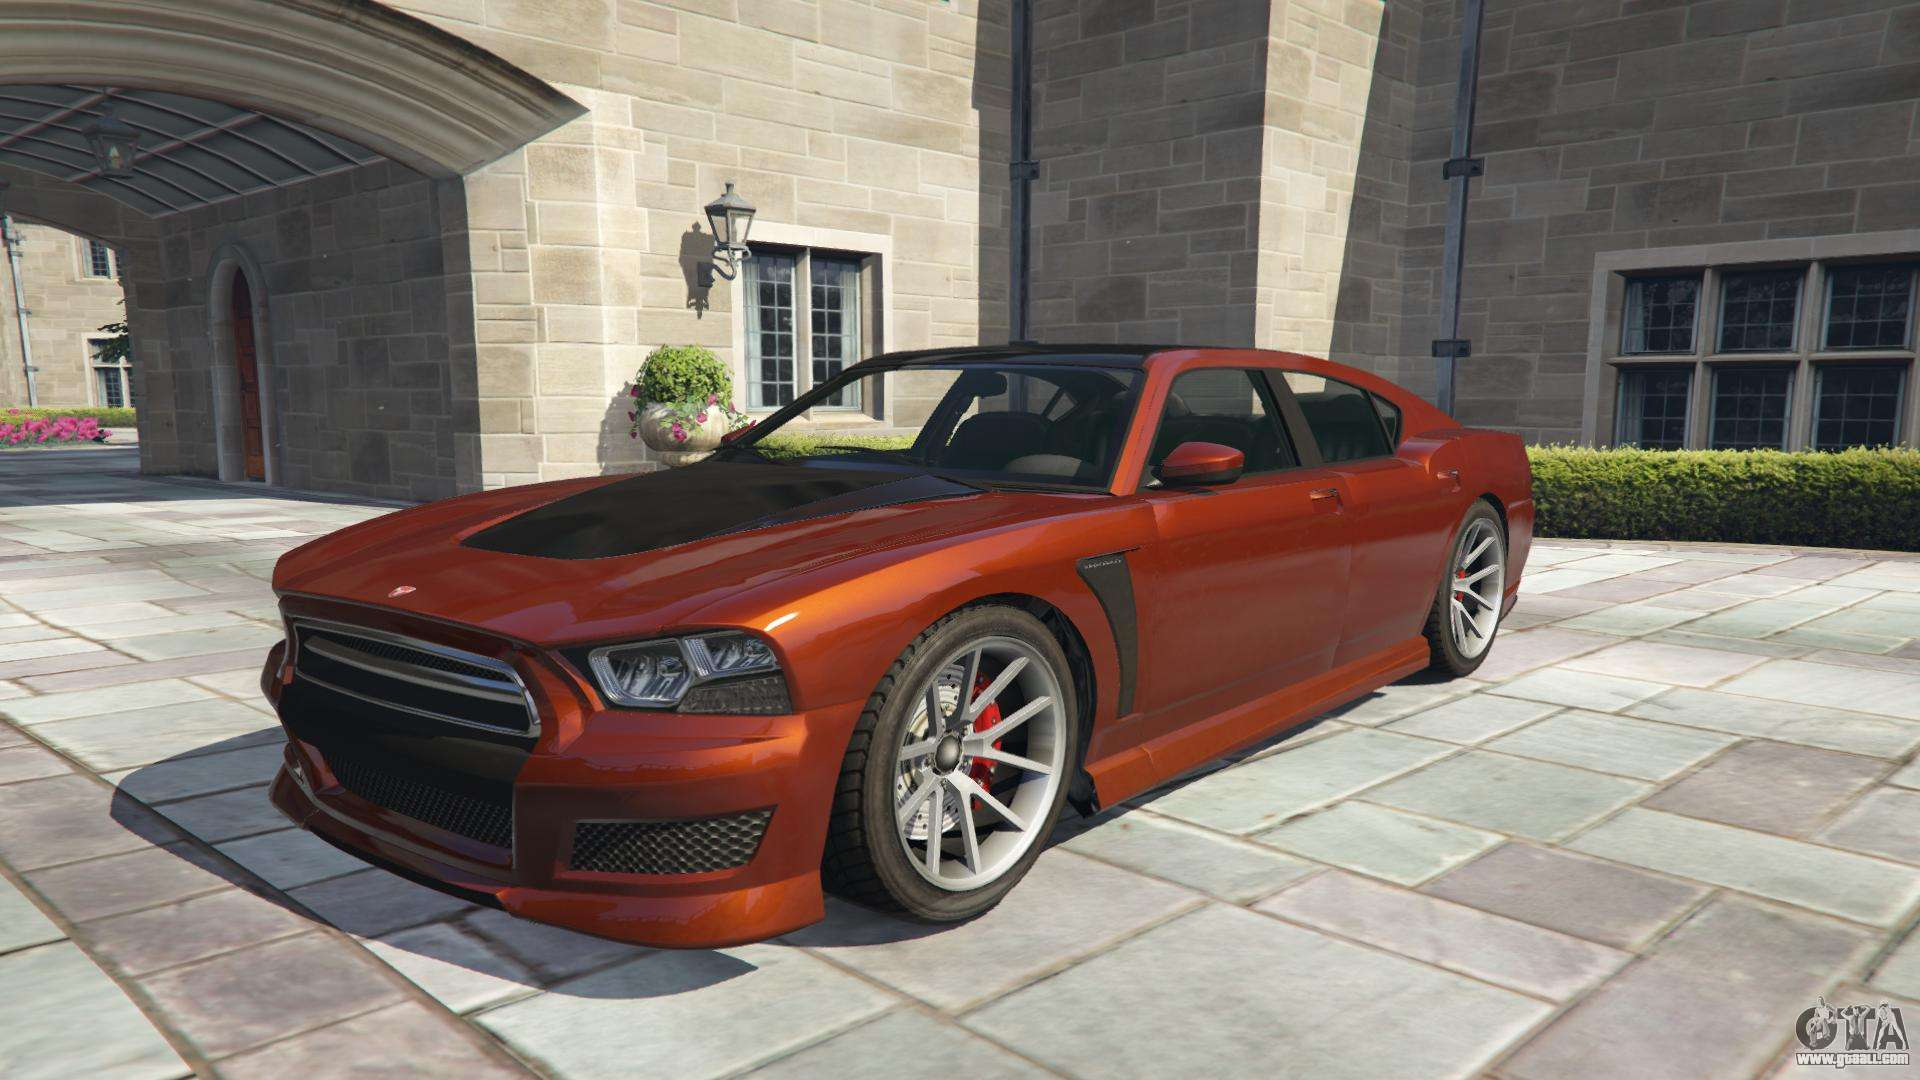 Bravado Buffalo S GTA 5 - front view